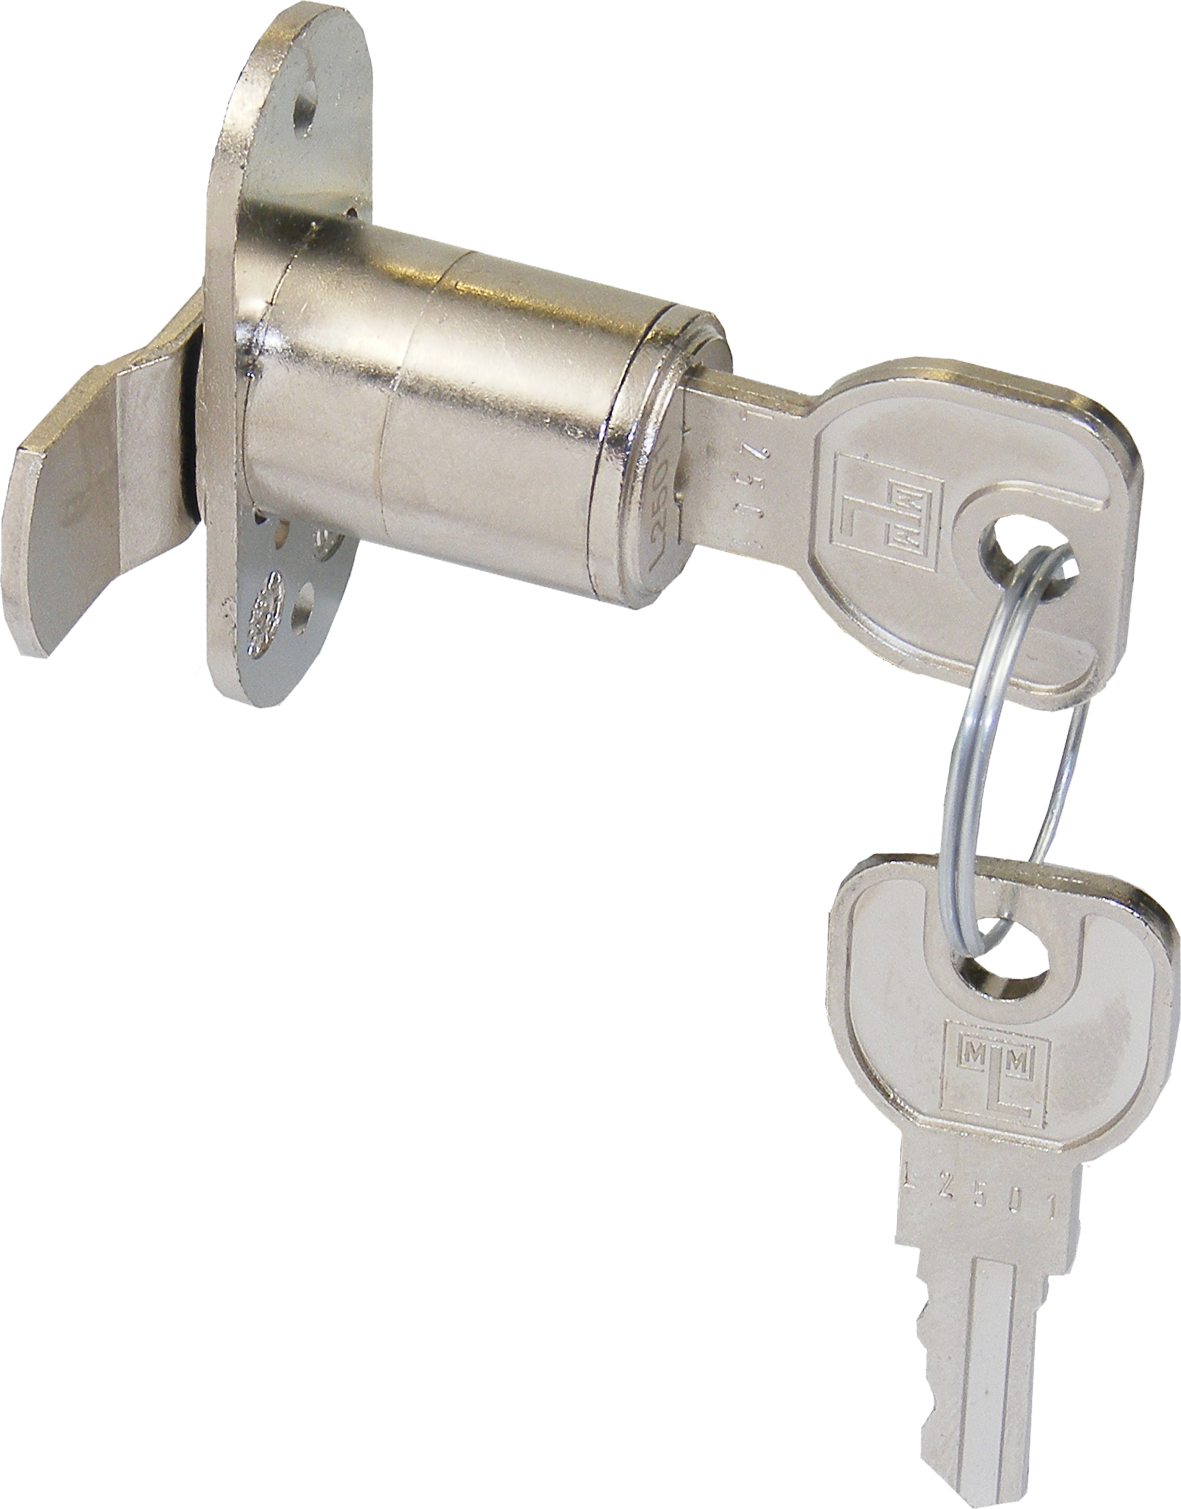 MLM Lehmann Cam Lock Keyed Alike MLM Lehmann Cam Lock Keyed Alike Measurements Key Range : L2501 Keyed Alike 16.5mm Diameter Cam Length : 23.5mm with 3mm crank Each Lock is supplied with 2 steel keys Manufactured by MLM Lehmann MLM Lehmann Cam Lock Keyed Alike Description MLM Lehmann are now producing their own version of the fixed cylinder cam locks to follow on from the success of the Huwil version. Built to the same high standards of the MLM Lehmann housing range. Cam locks are used on numerous pieces of furniture from pedestal cabinets, cupboards, drawers and mailboxes. Supplied with a flat cam which rotates through 90 degrees and generally locates behind an angled striker plate.